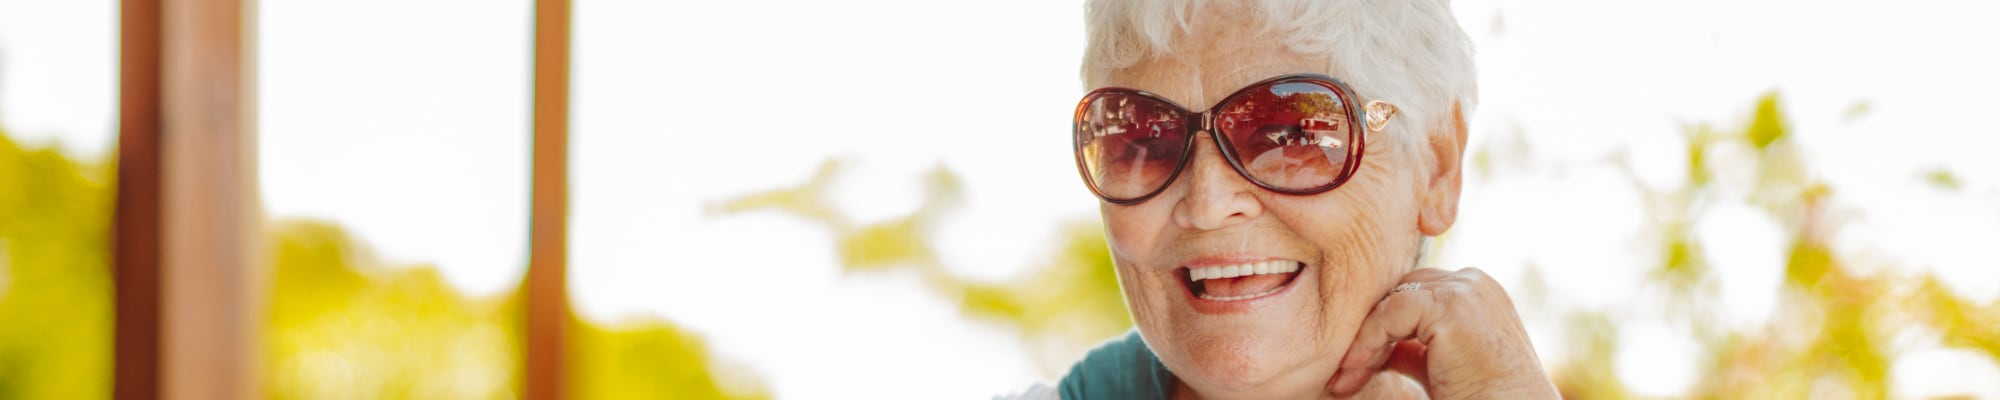 Reviews of Corydon, Indiana senior living